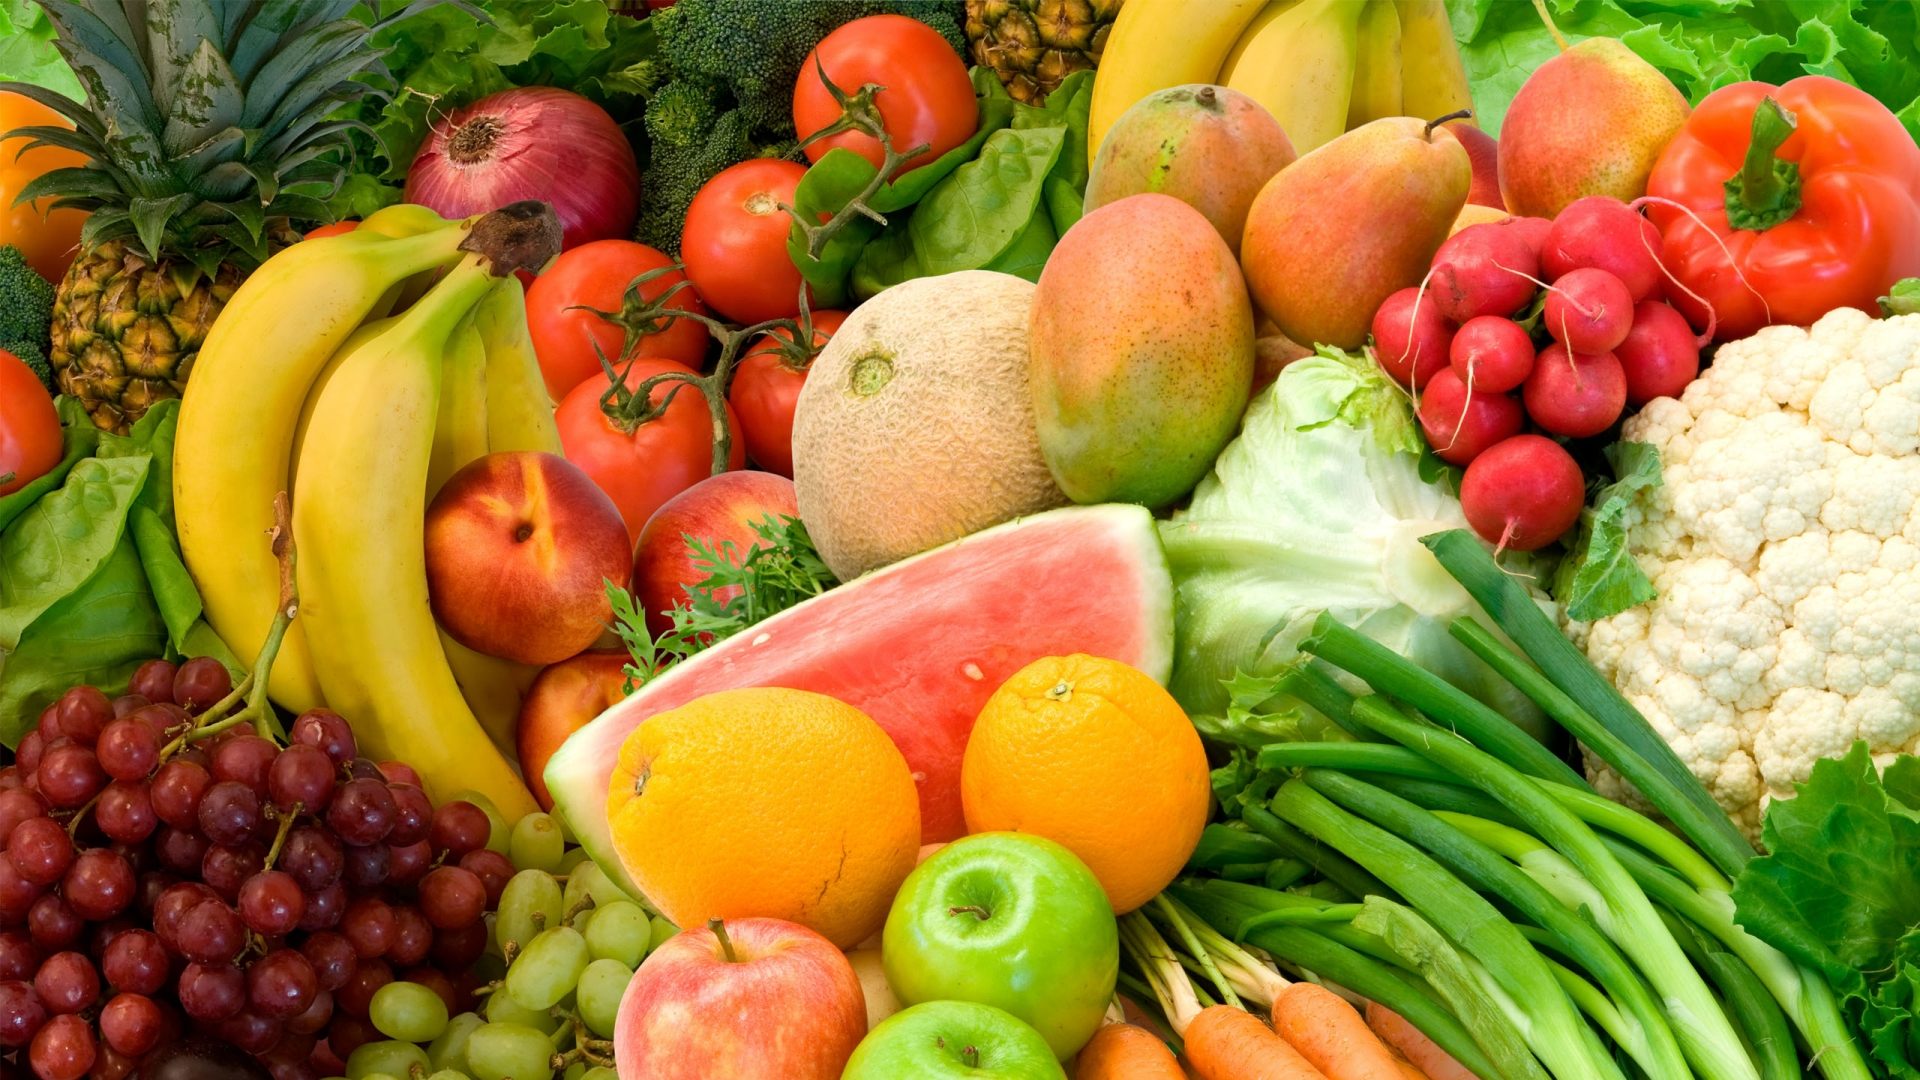 Fruits-and-vegetables-hd-wallpapers | Phantom Forest Blog